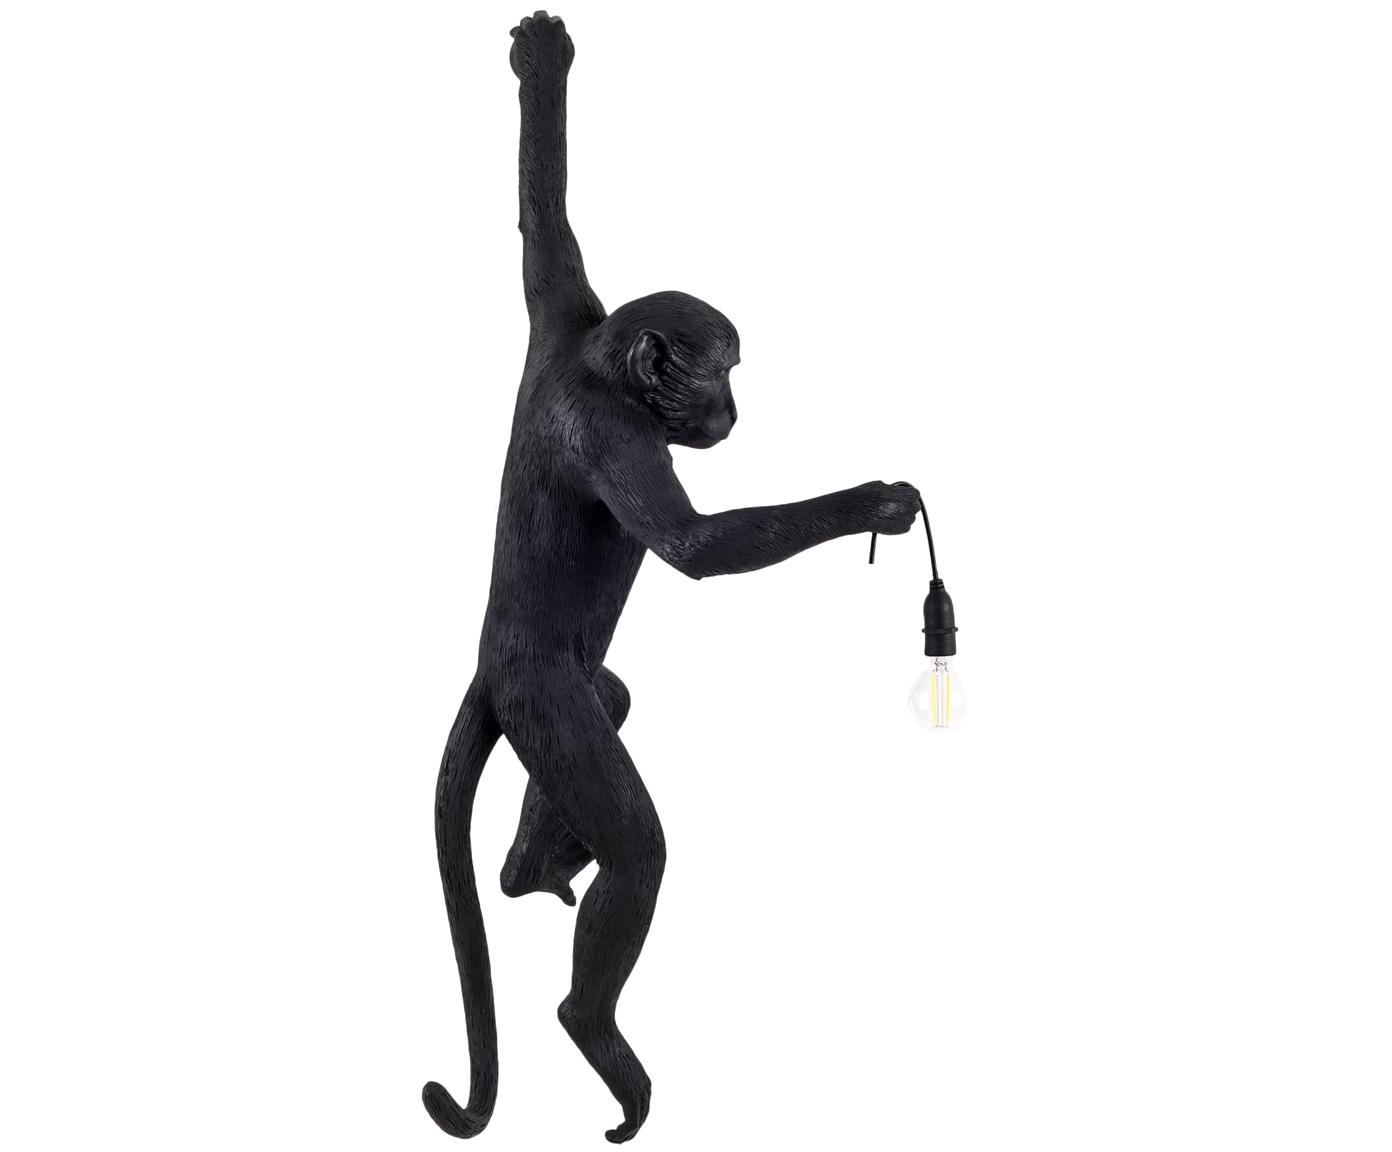 Applique da esterno a LED Monkey, Resina, Nero, Larg. 37 x Alt. 77 cm